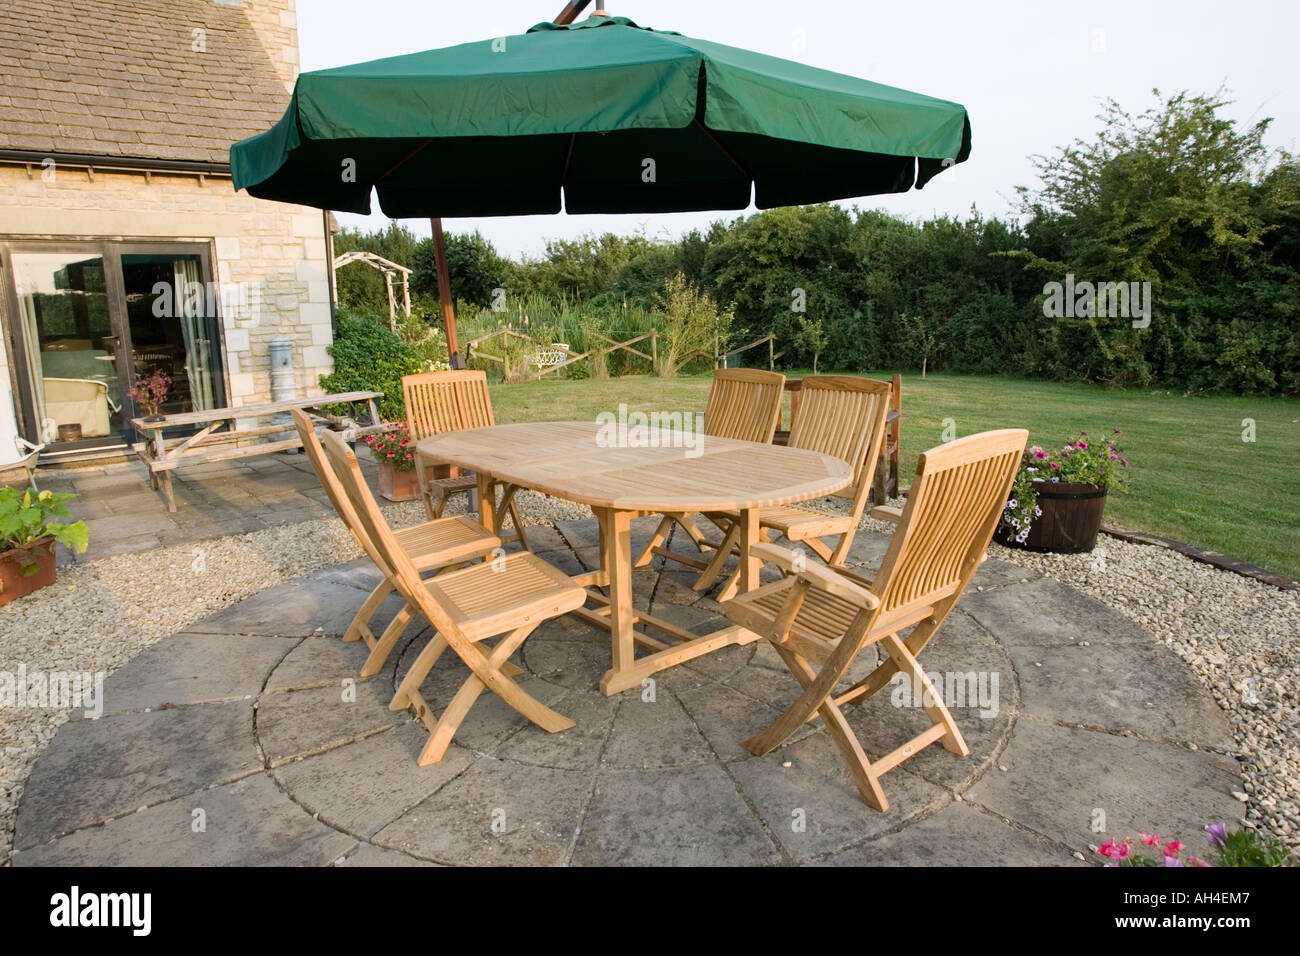 Teak Garden Table And Chairs On Patio With Large Umbrella